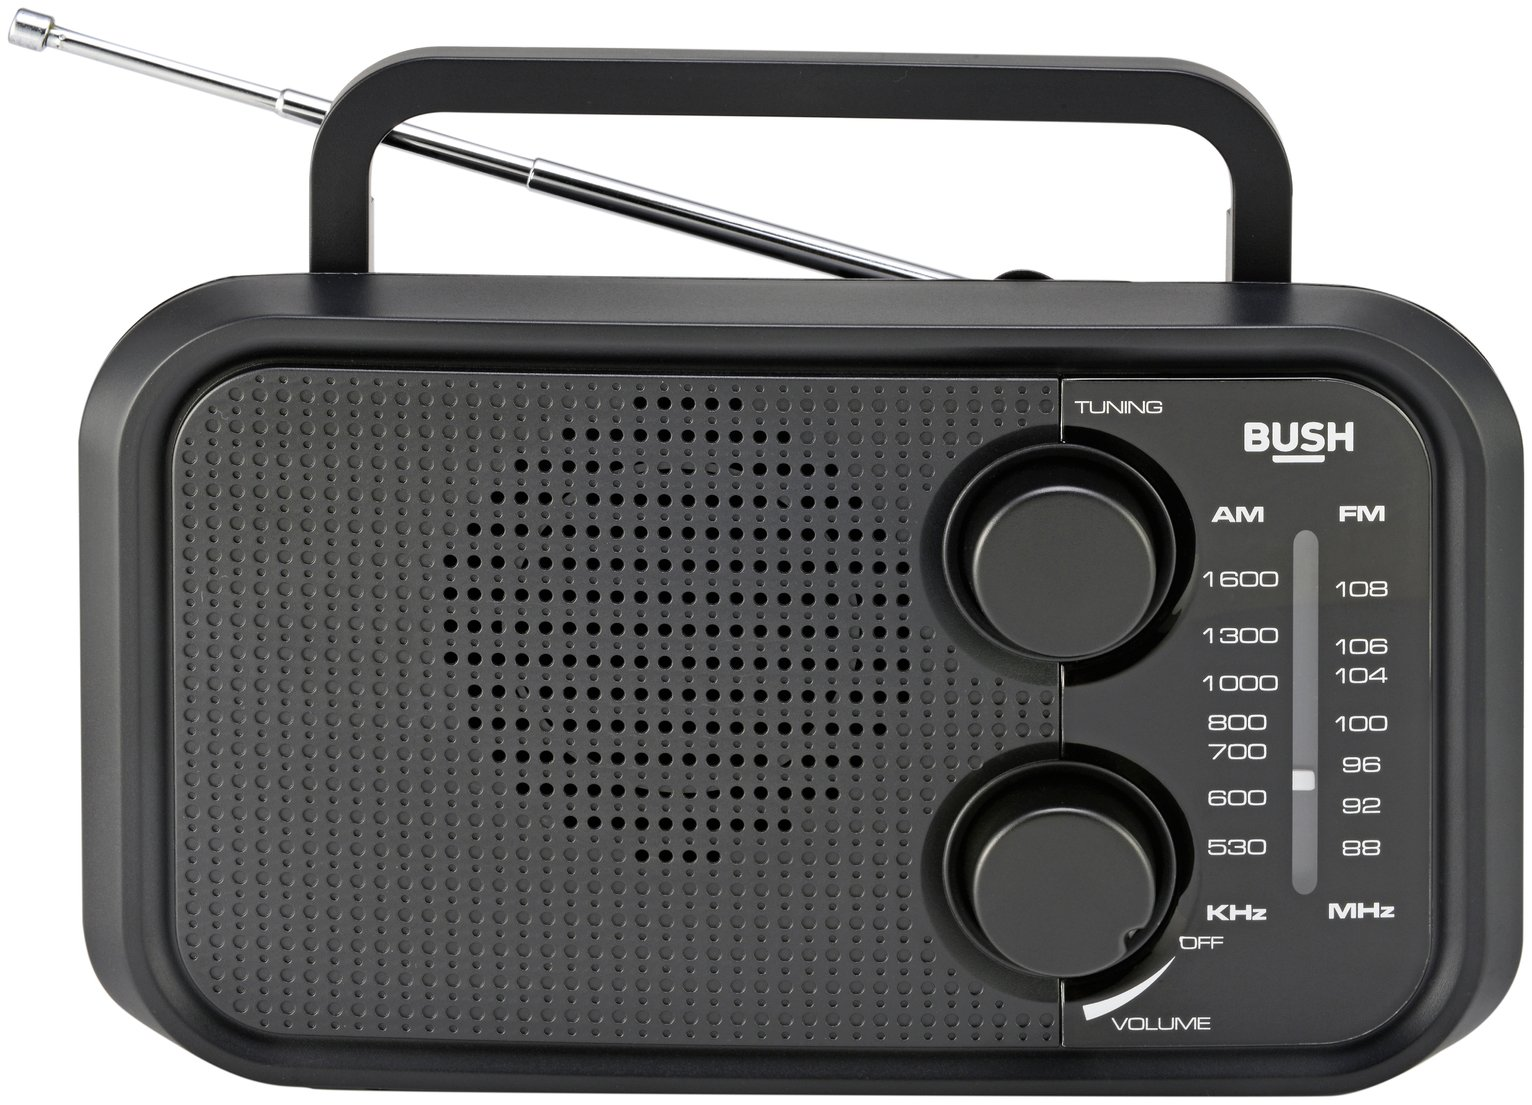 bush-pr-206-fmam-portable-radio